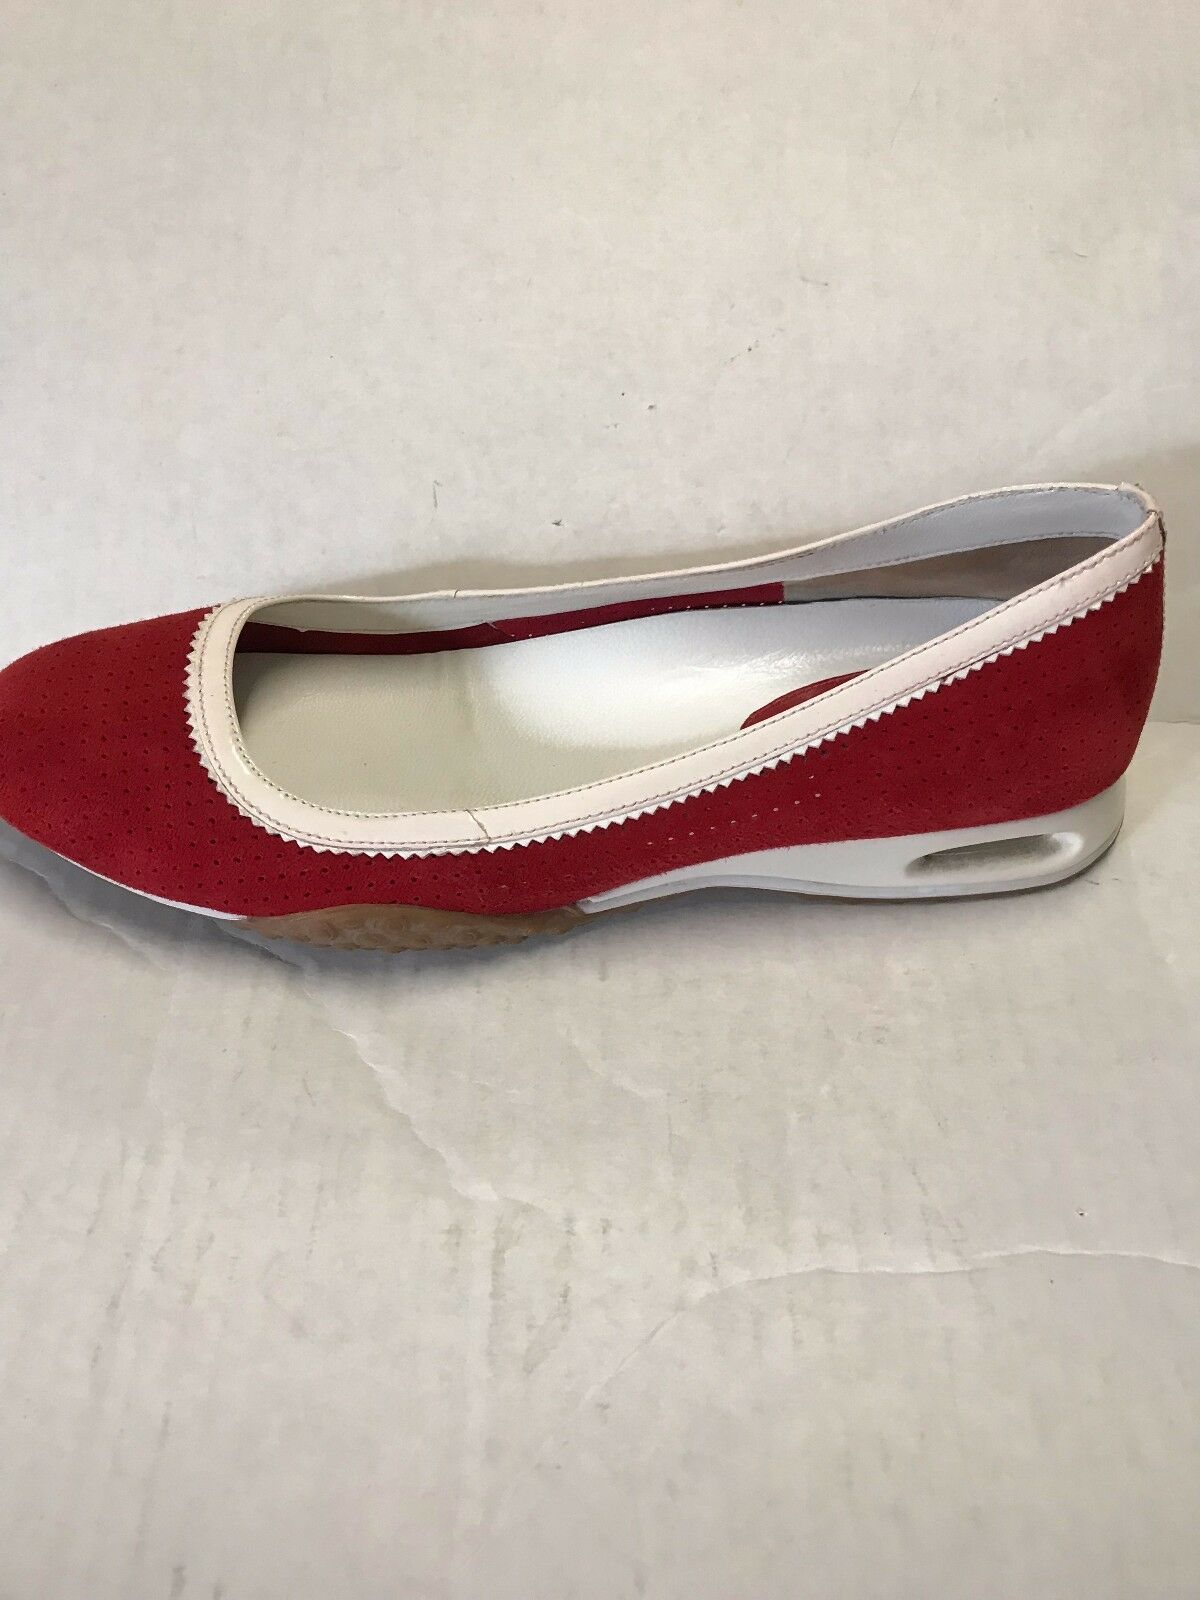 Cole Haan Women's shoes G Series Red Suede w  White Patent Slip On Size 7 B